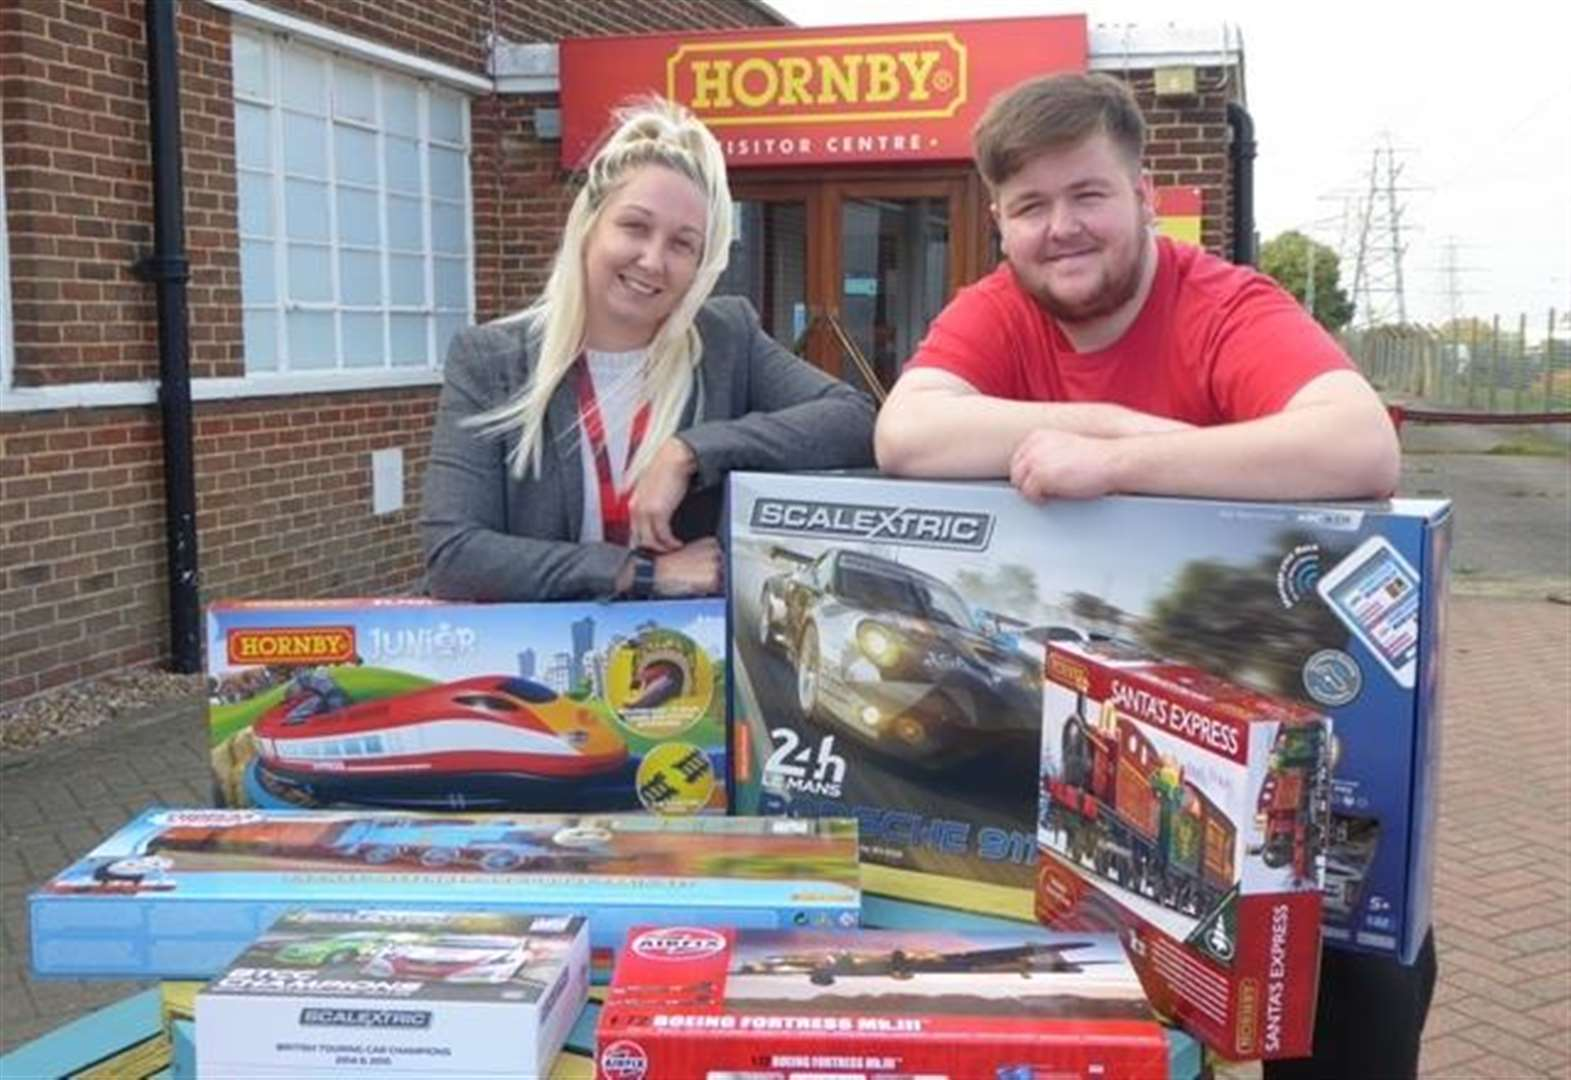 Hornby raffle prizes worth hundreds of pounds